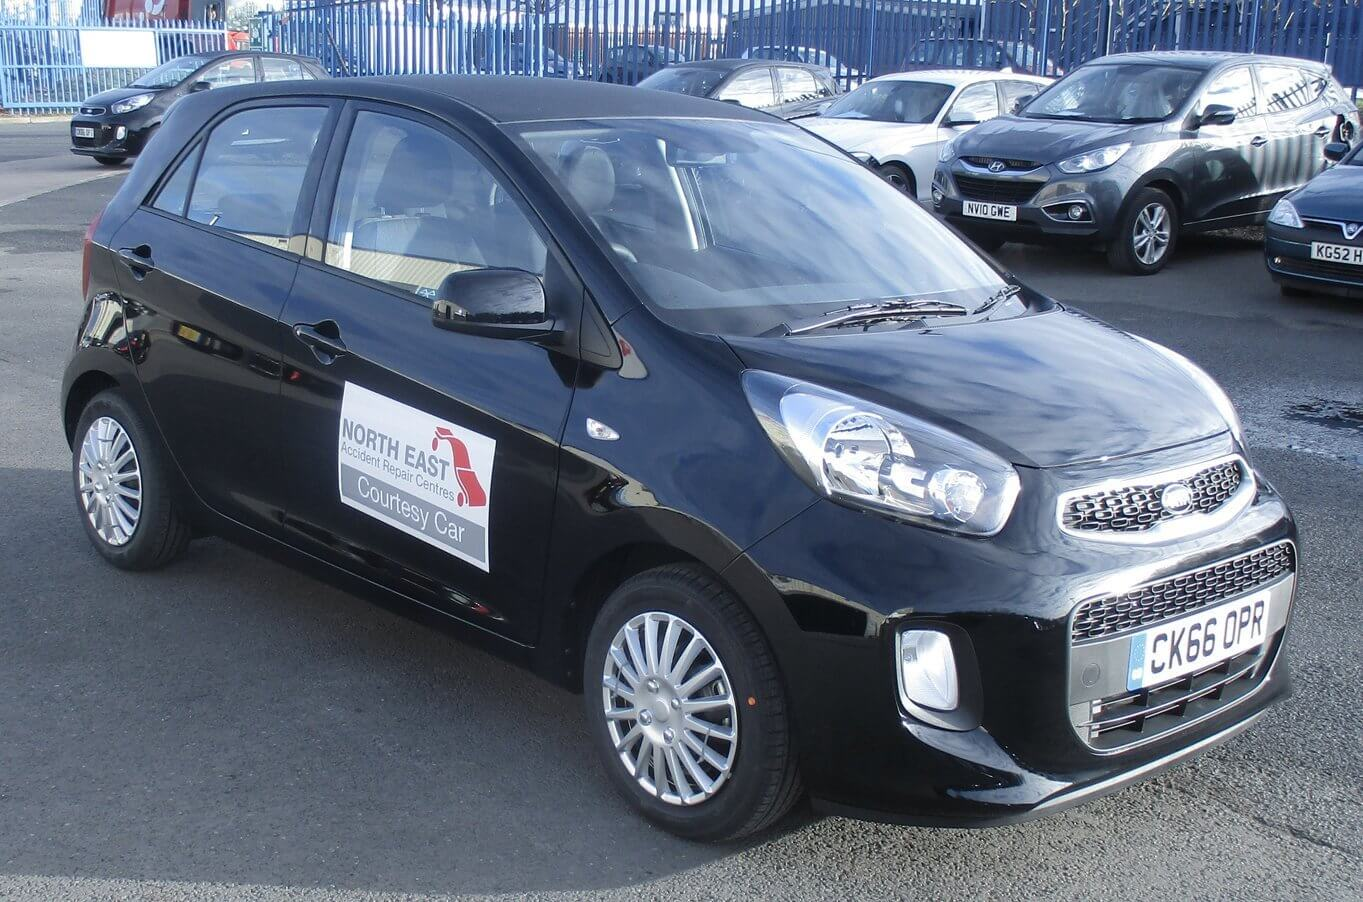 North East Accident Repair Centres enhances customer service with significant addition to its courtesy car fleet